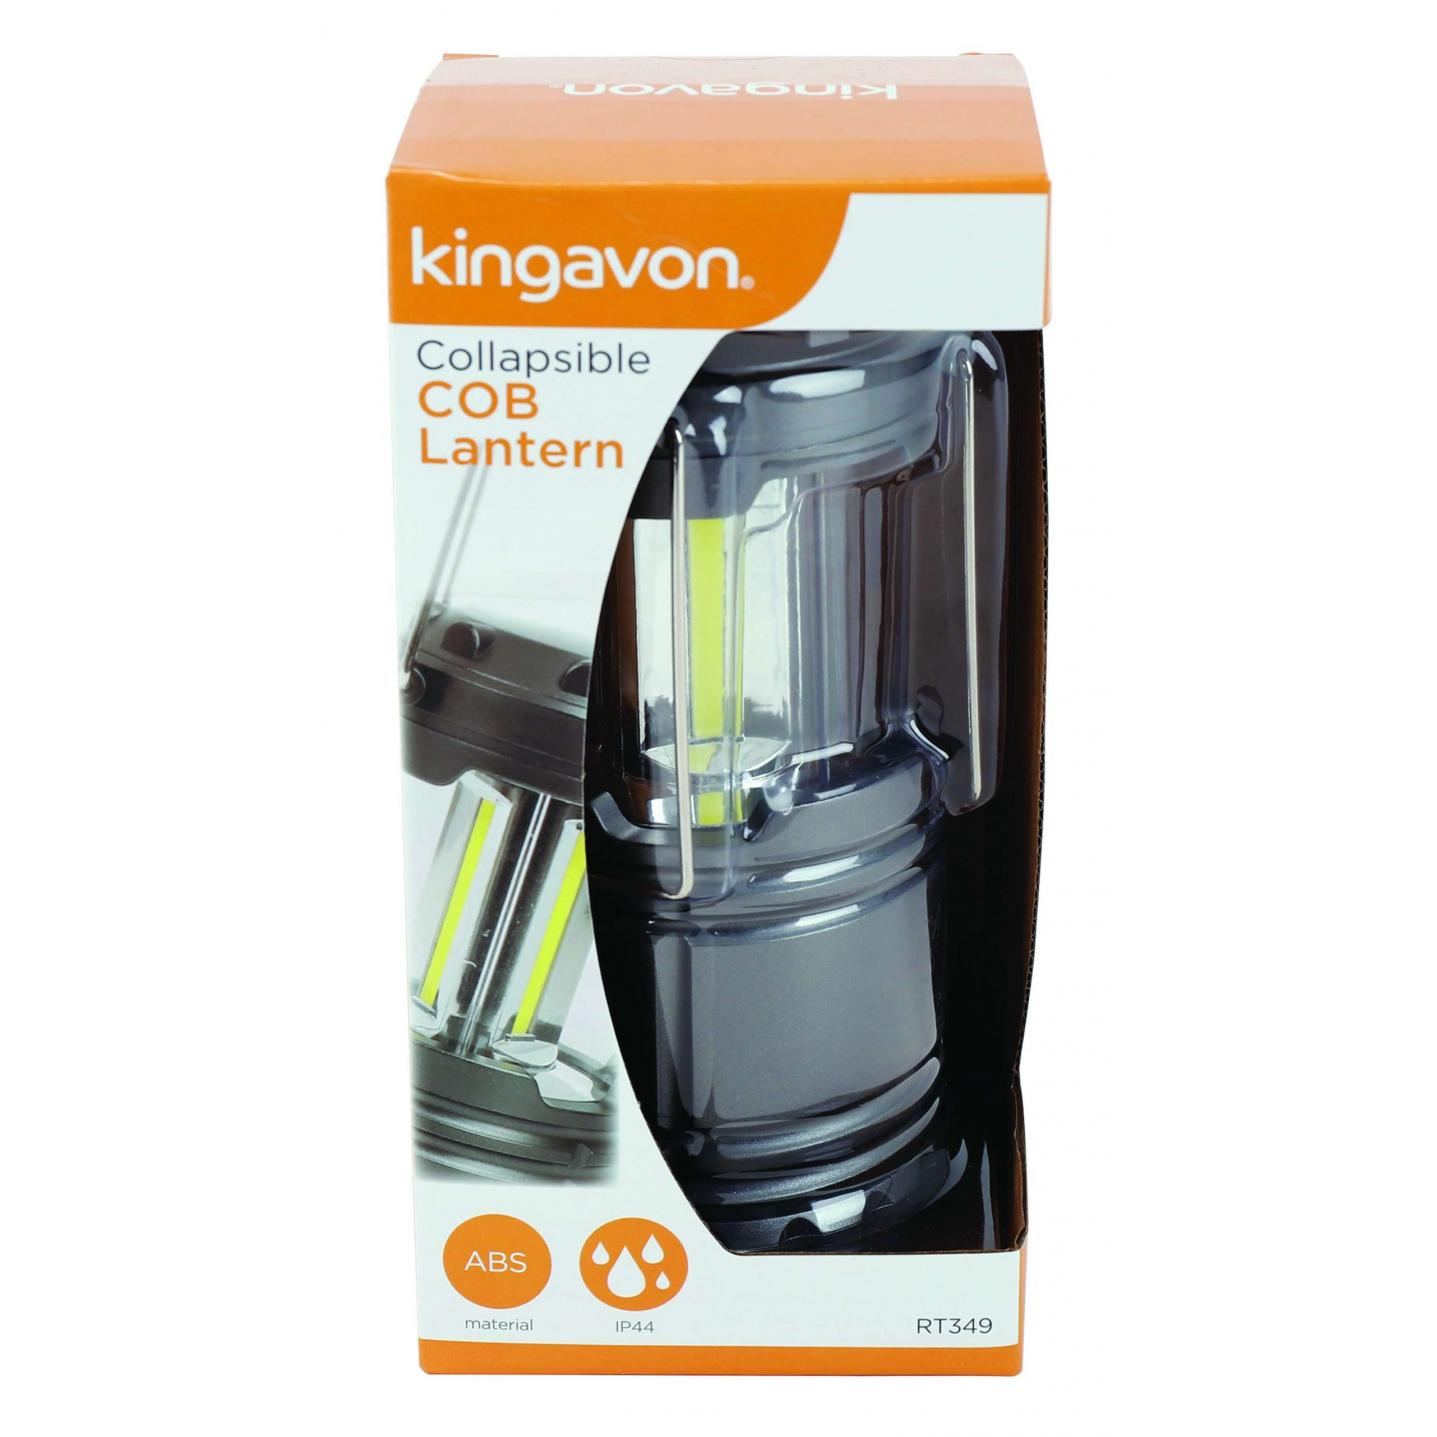 Kingavon Large Collapsible COB Lantern